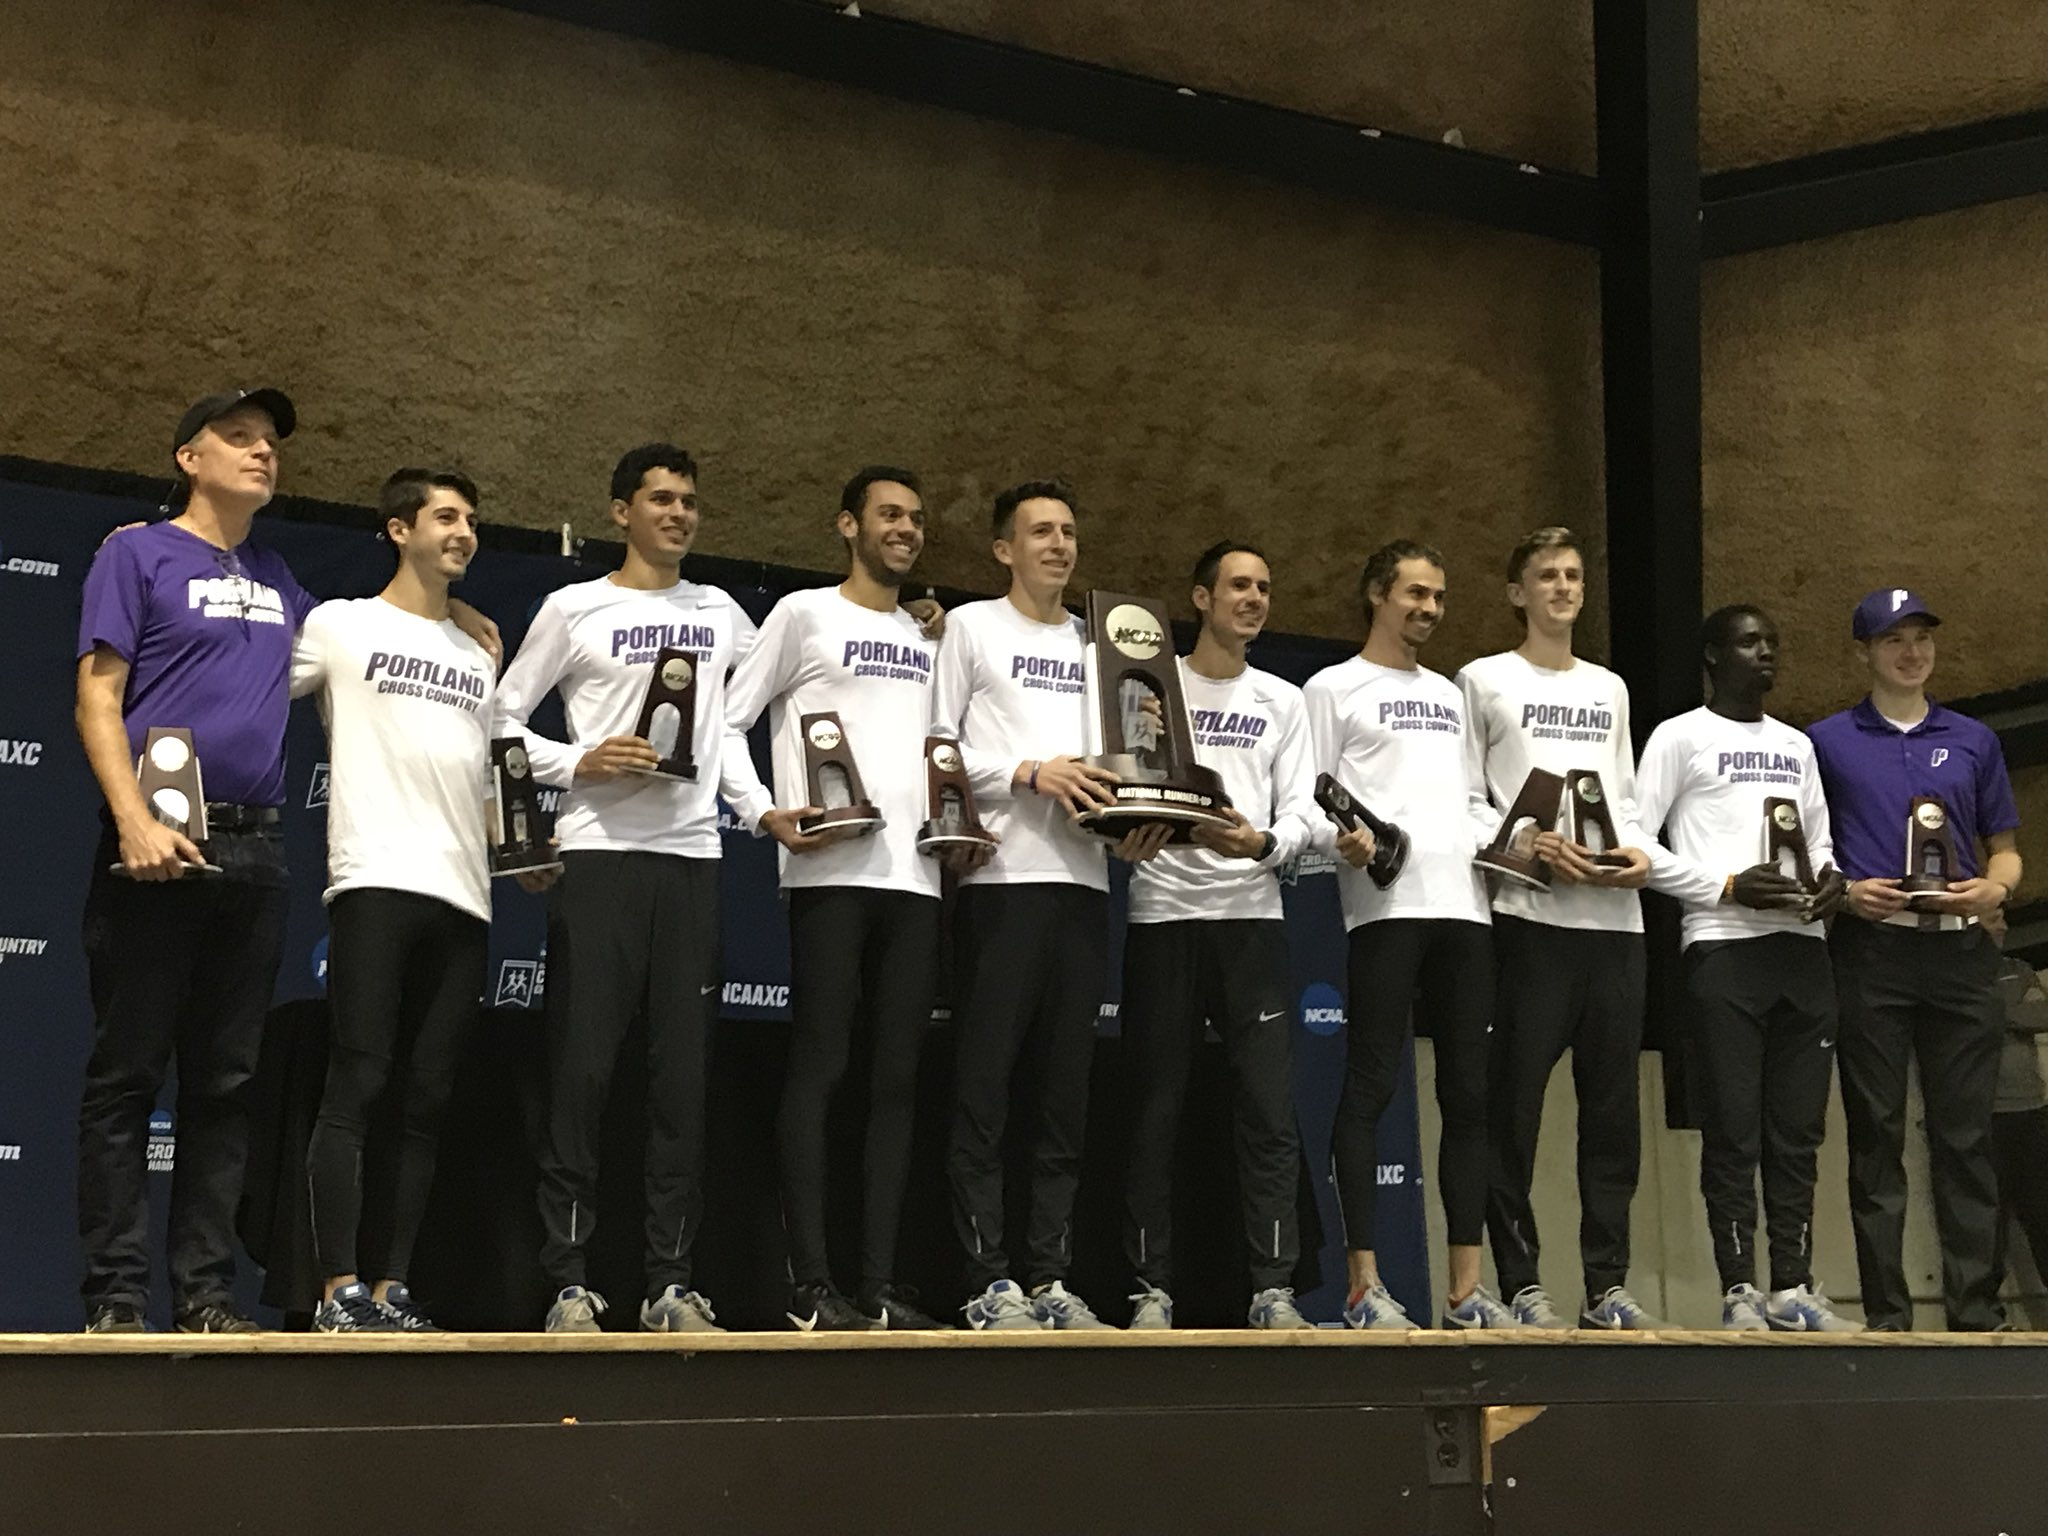 Men's XC places #2 at Nationals!!! Highest finish ever DO7ebrLX0AEzdpW?format=jpg&name=large